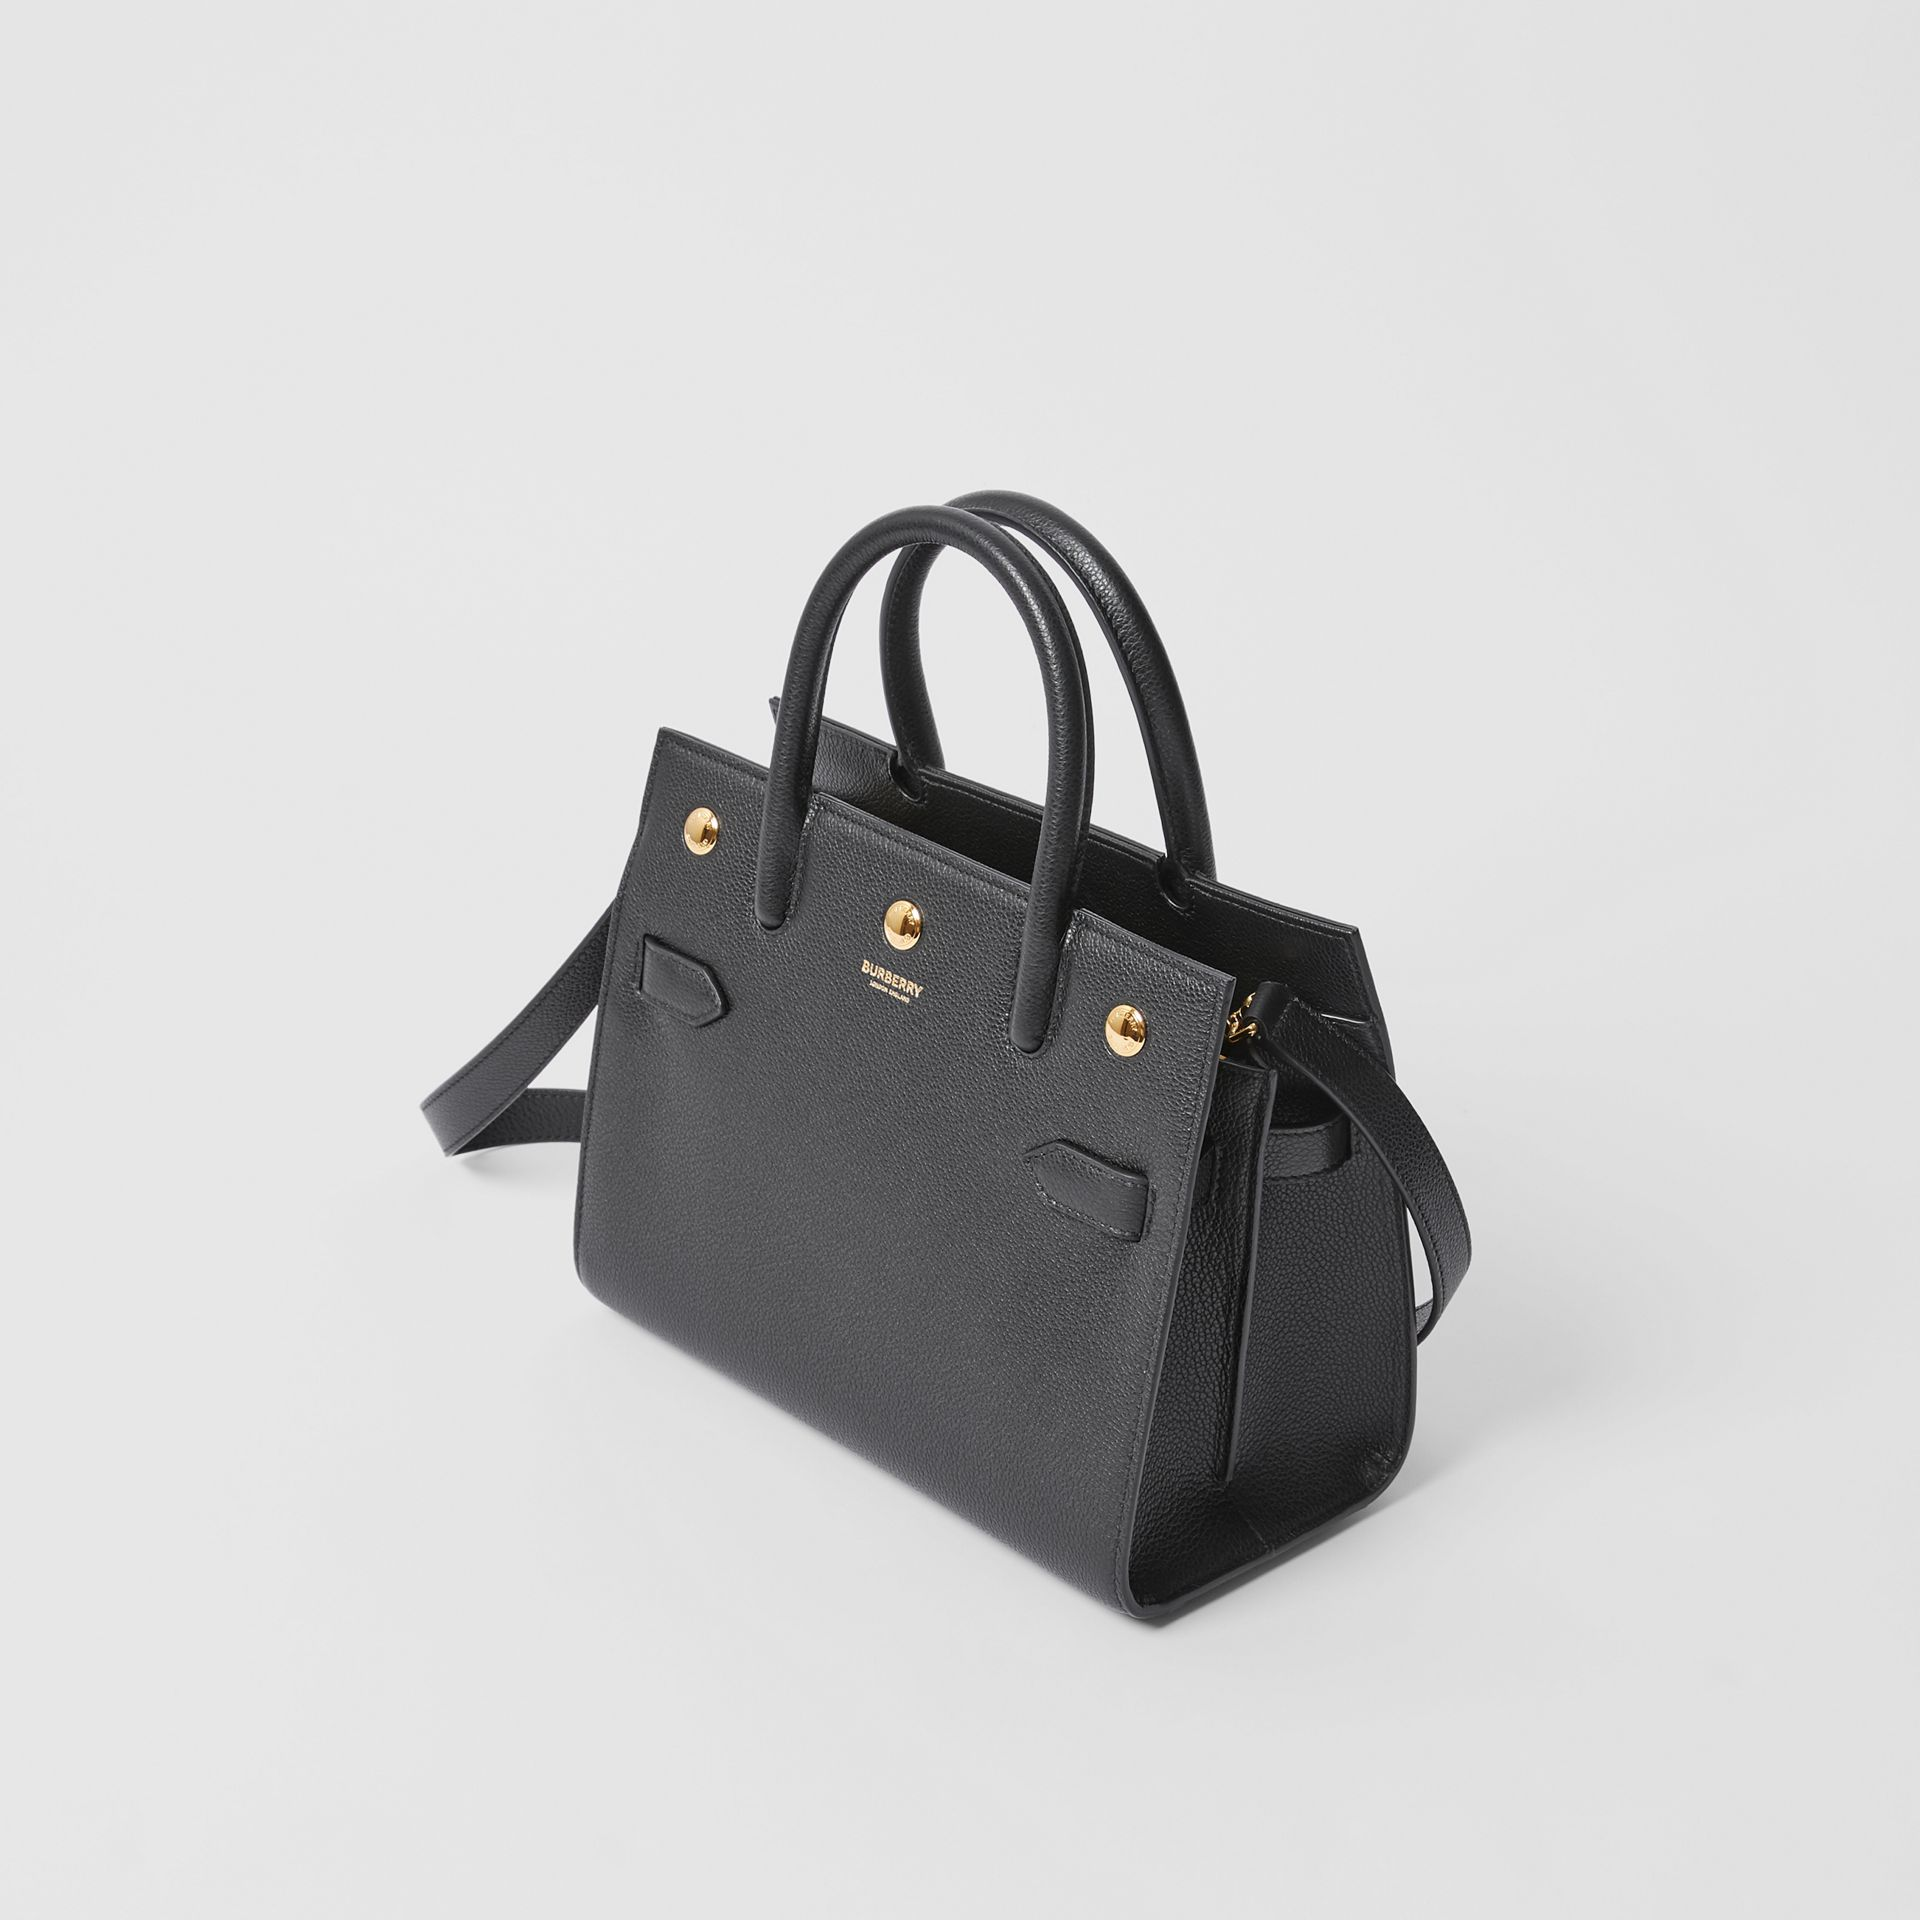 Mini Leather Two-handle Title Bag in Black - Women | Burberry United Kingdom - gallery image 3